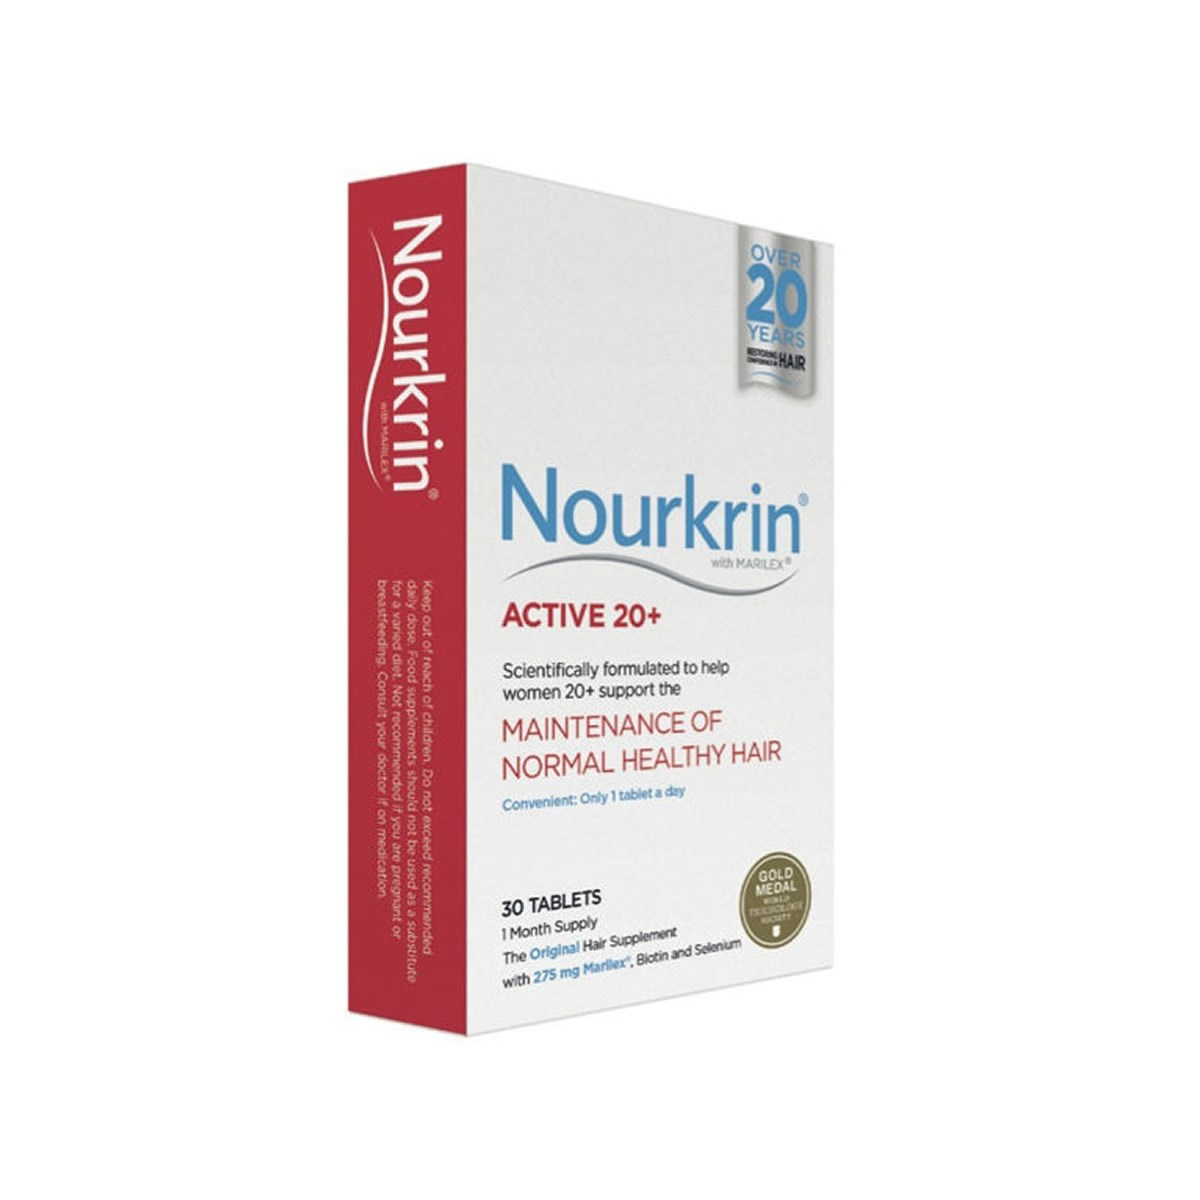 Nourkrin Active 20+ (1 Month Supply)